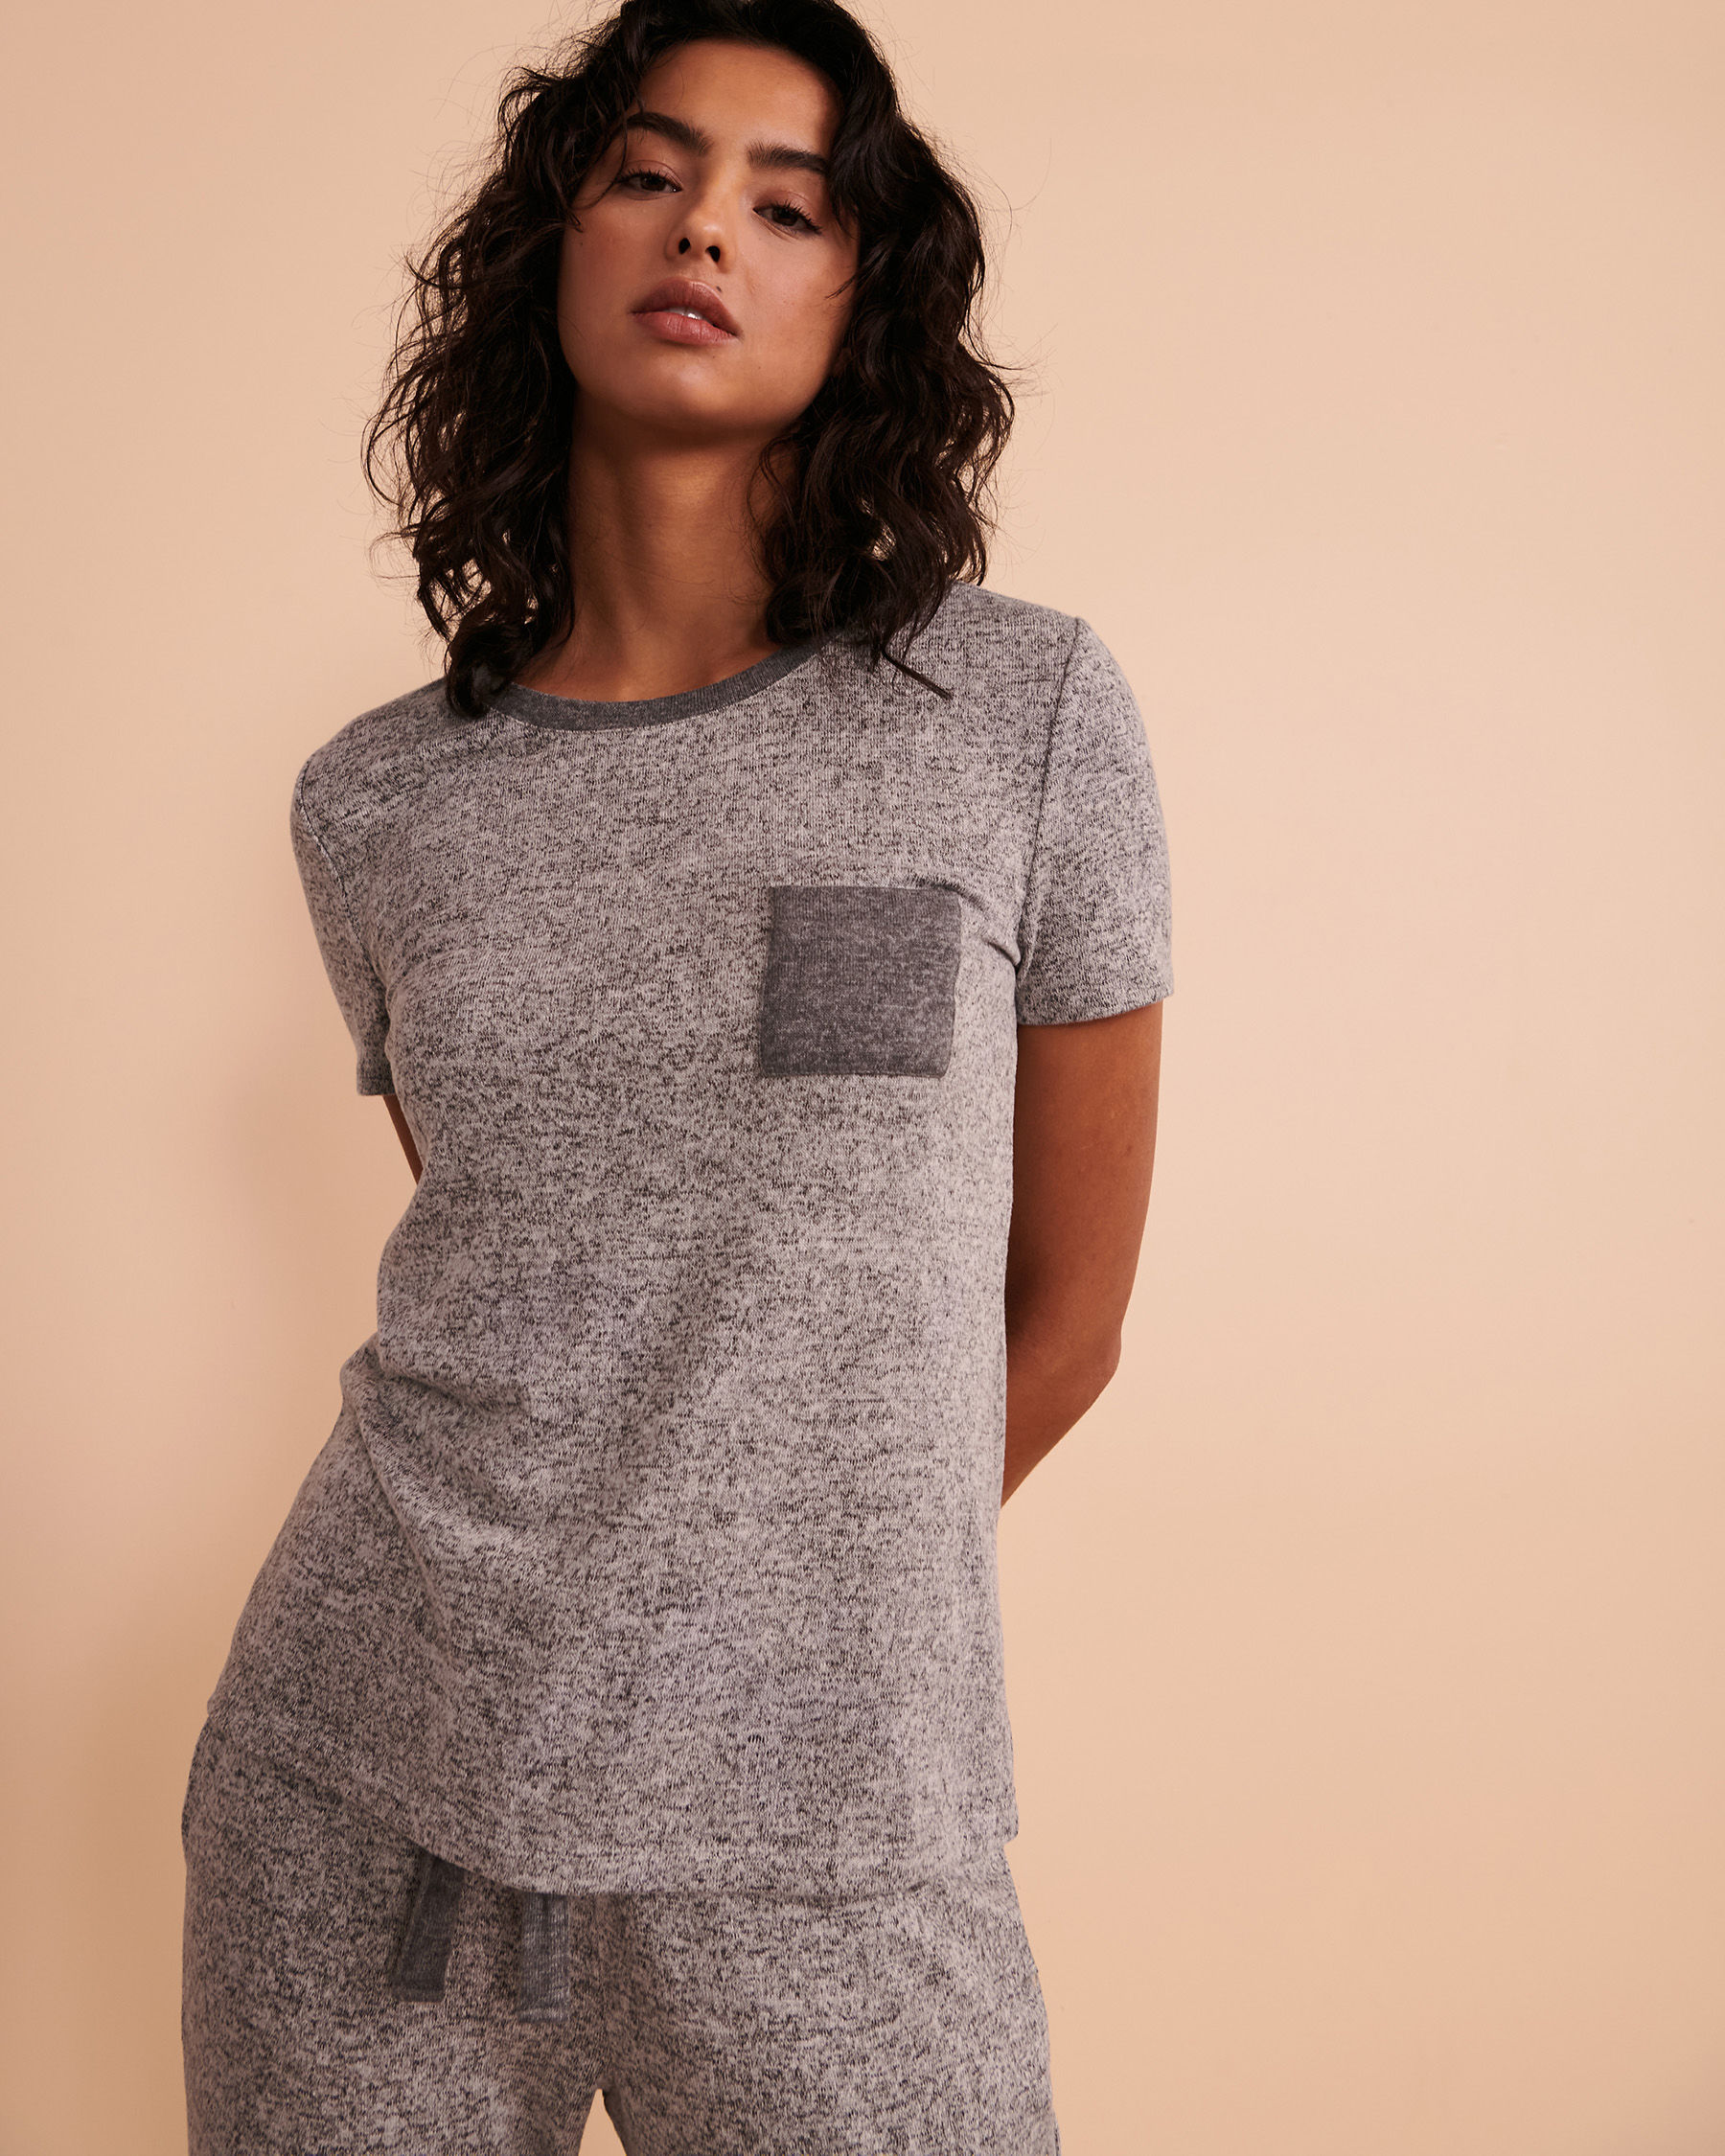 TURQUOISE COUTURE Crew Neck T-shirt Soft grey 02100001 - View6